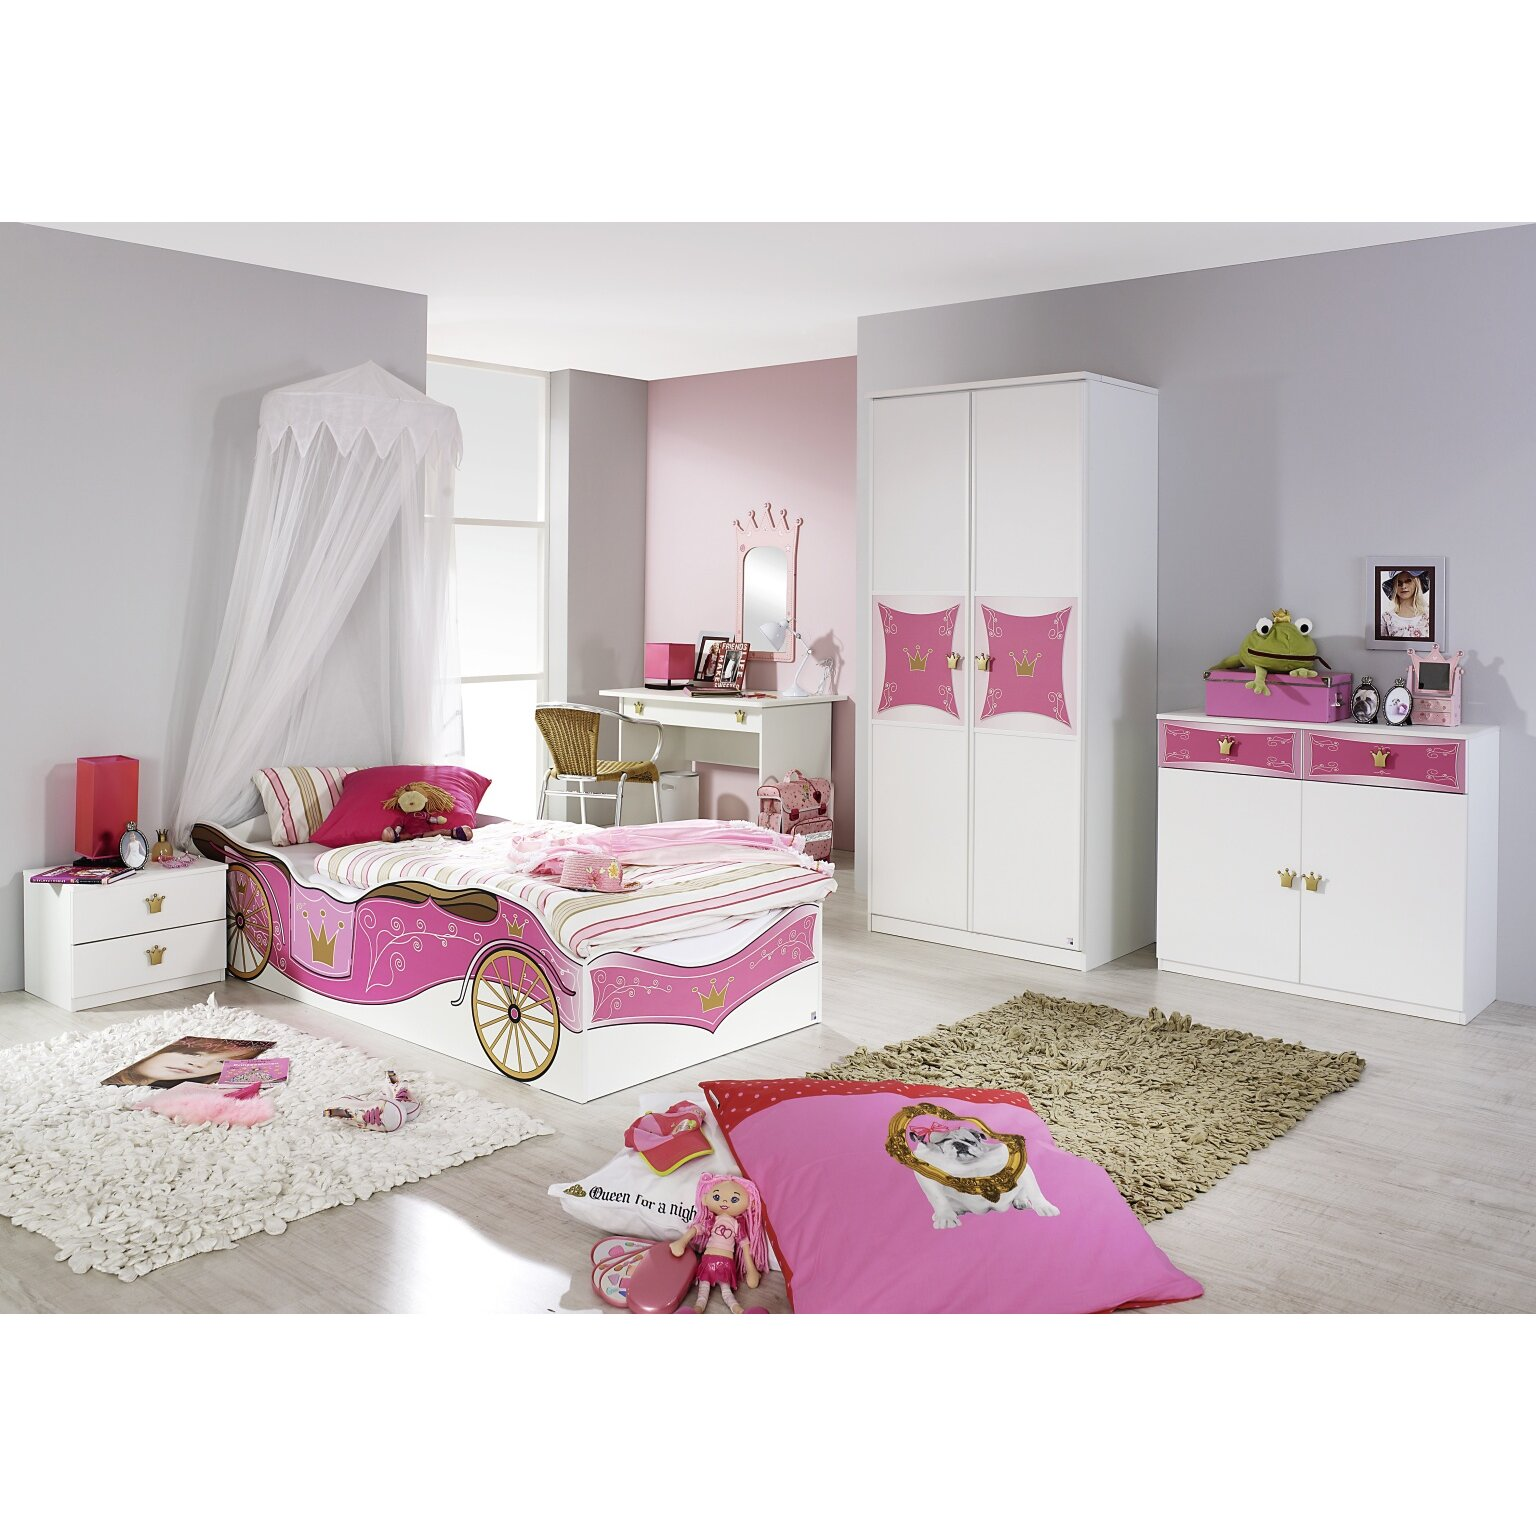 rauch 4 tlg schlafzimmer set kate 90 x 200 cm bewertungen. Black Bedroom Furniture Sets. Home Design Ideas